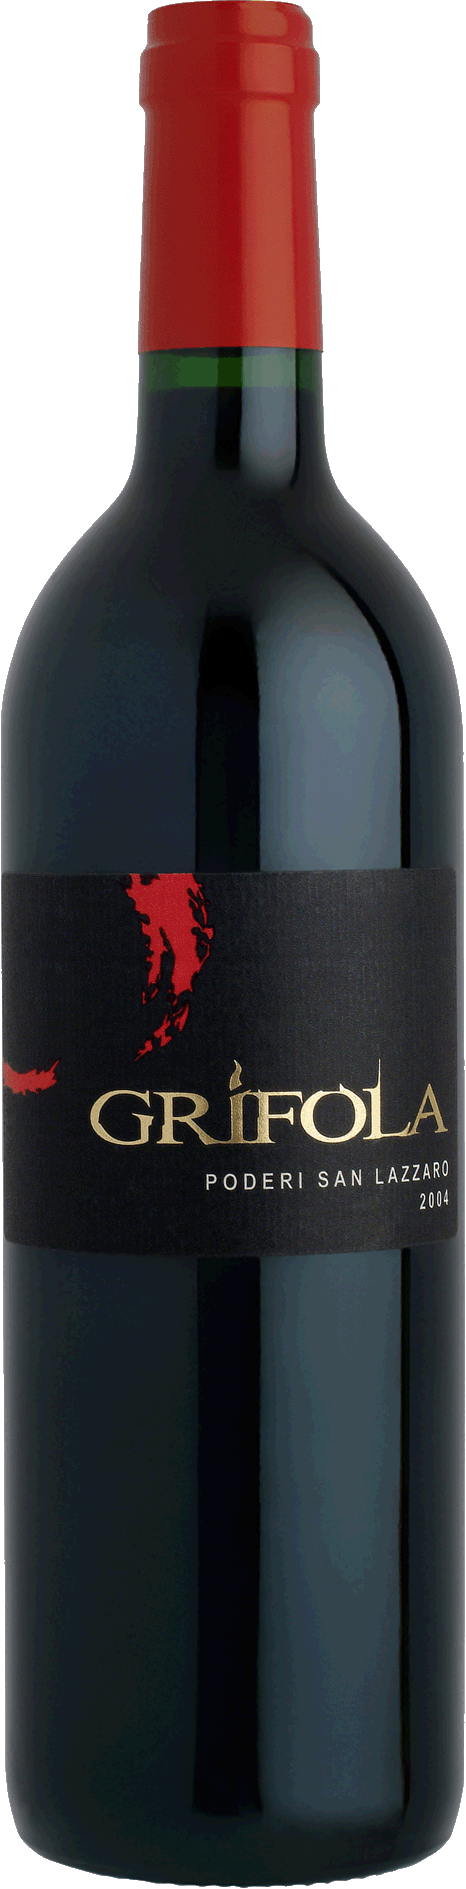 Grifola 2010